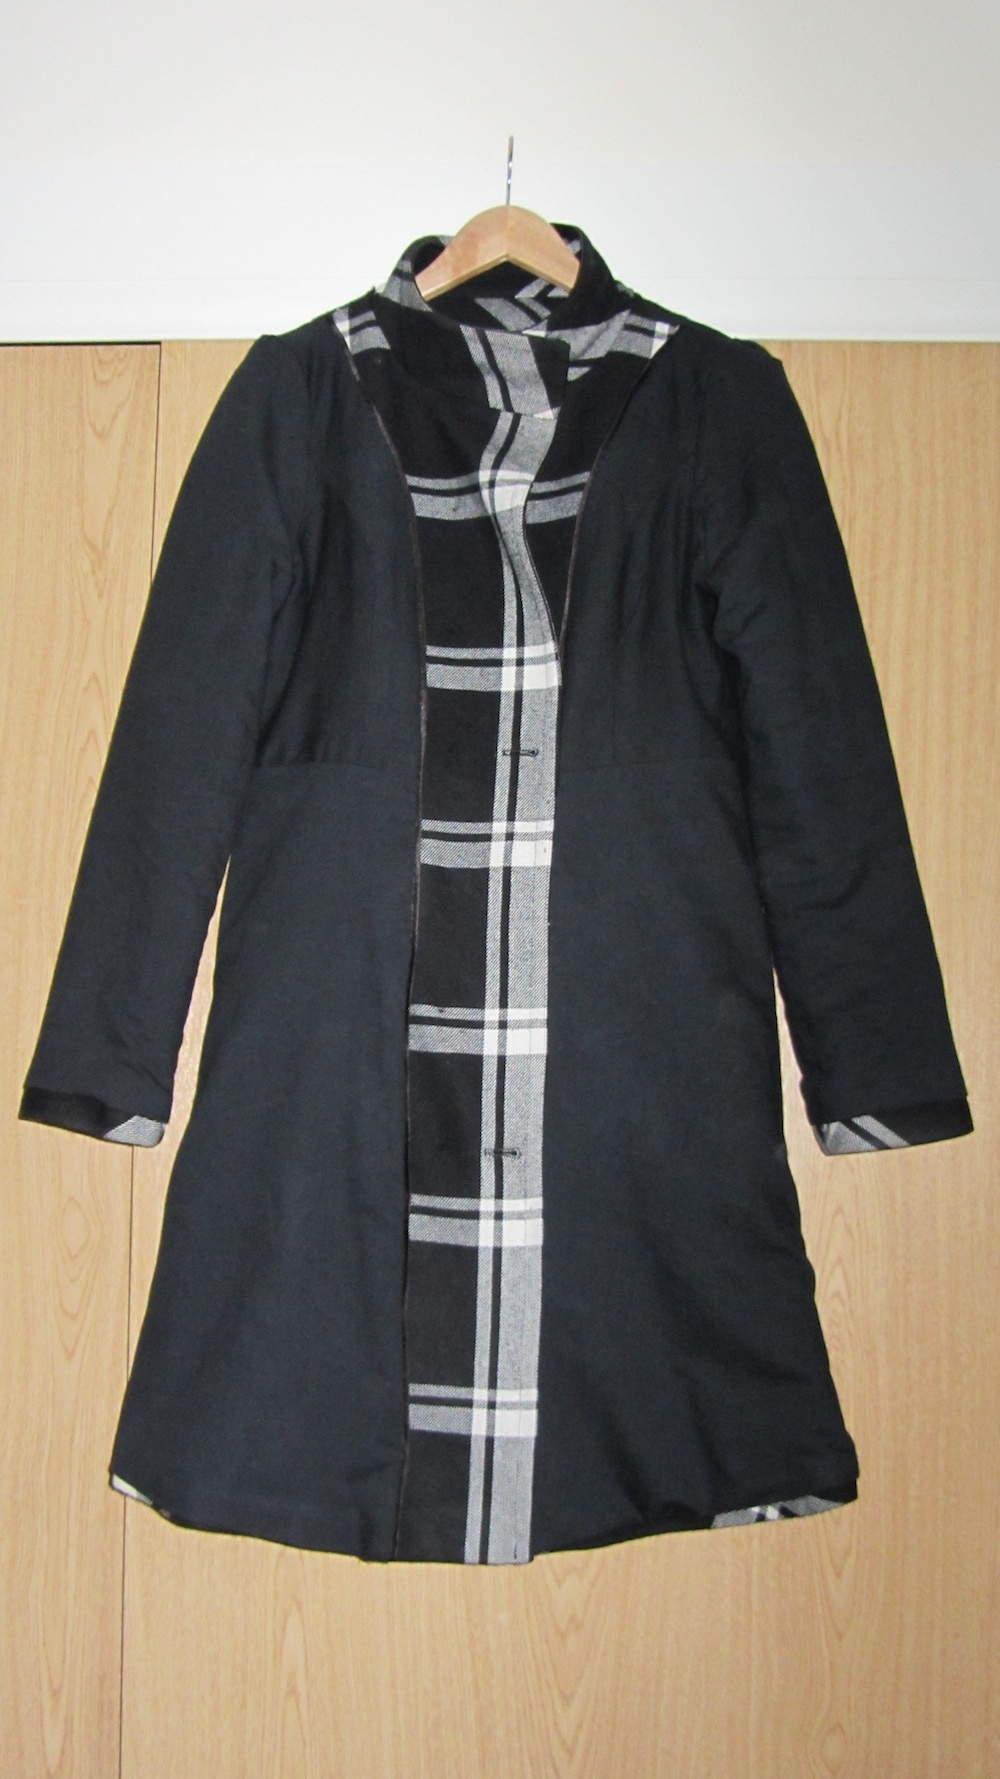 How to replace a coat lining tutorial 7.jpg